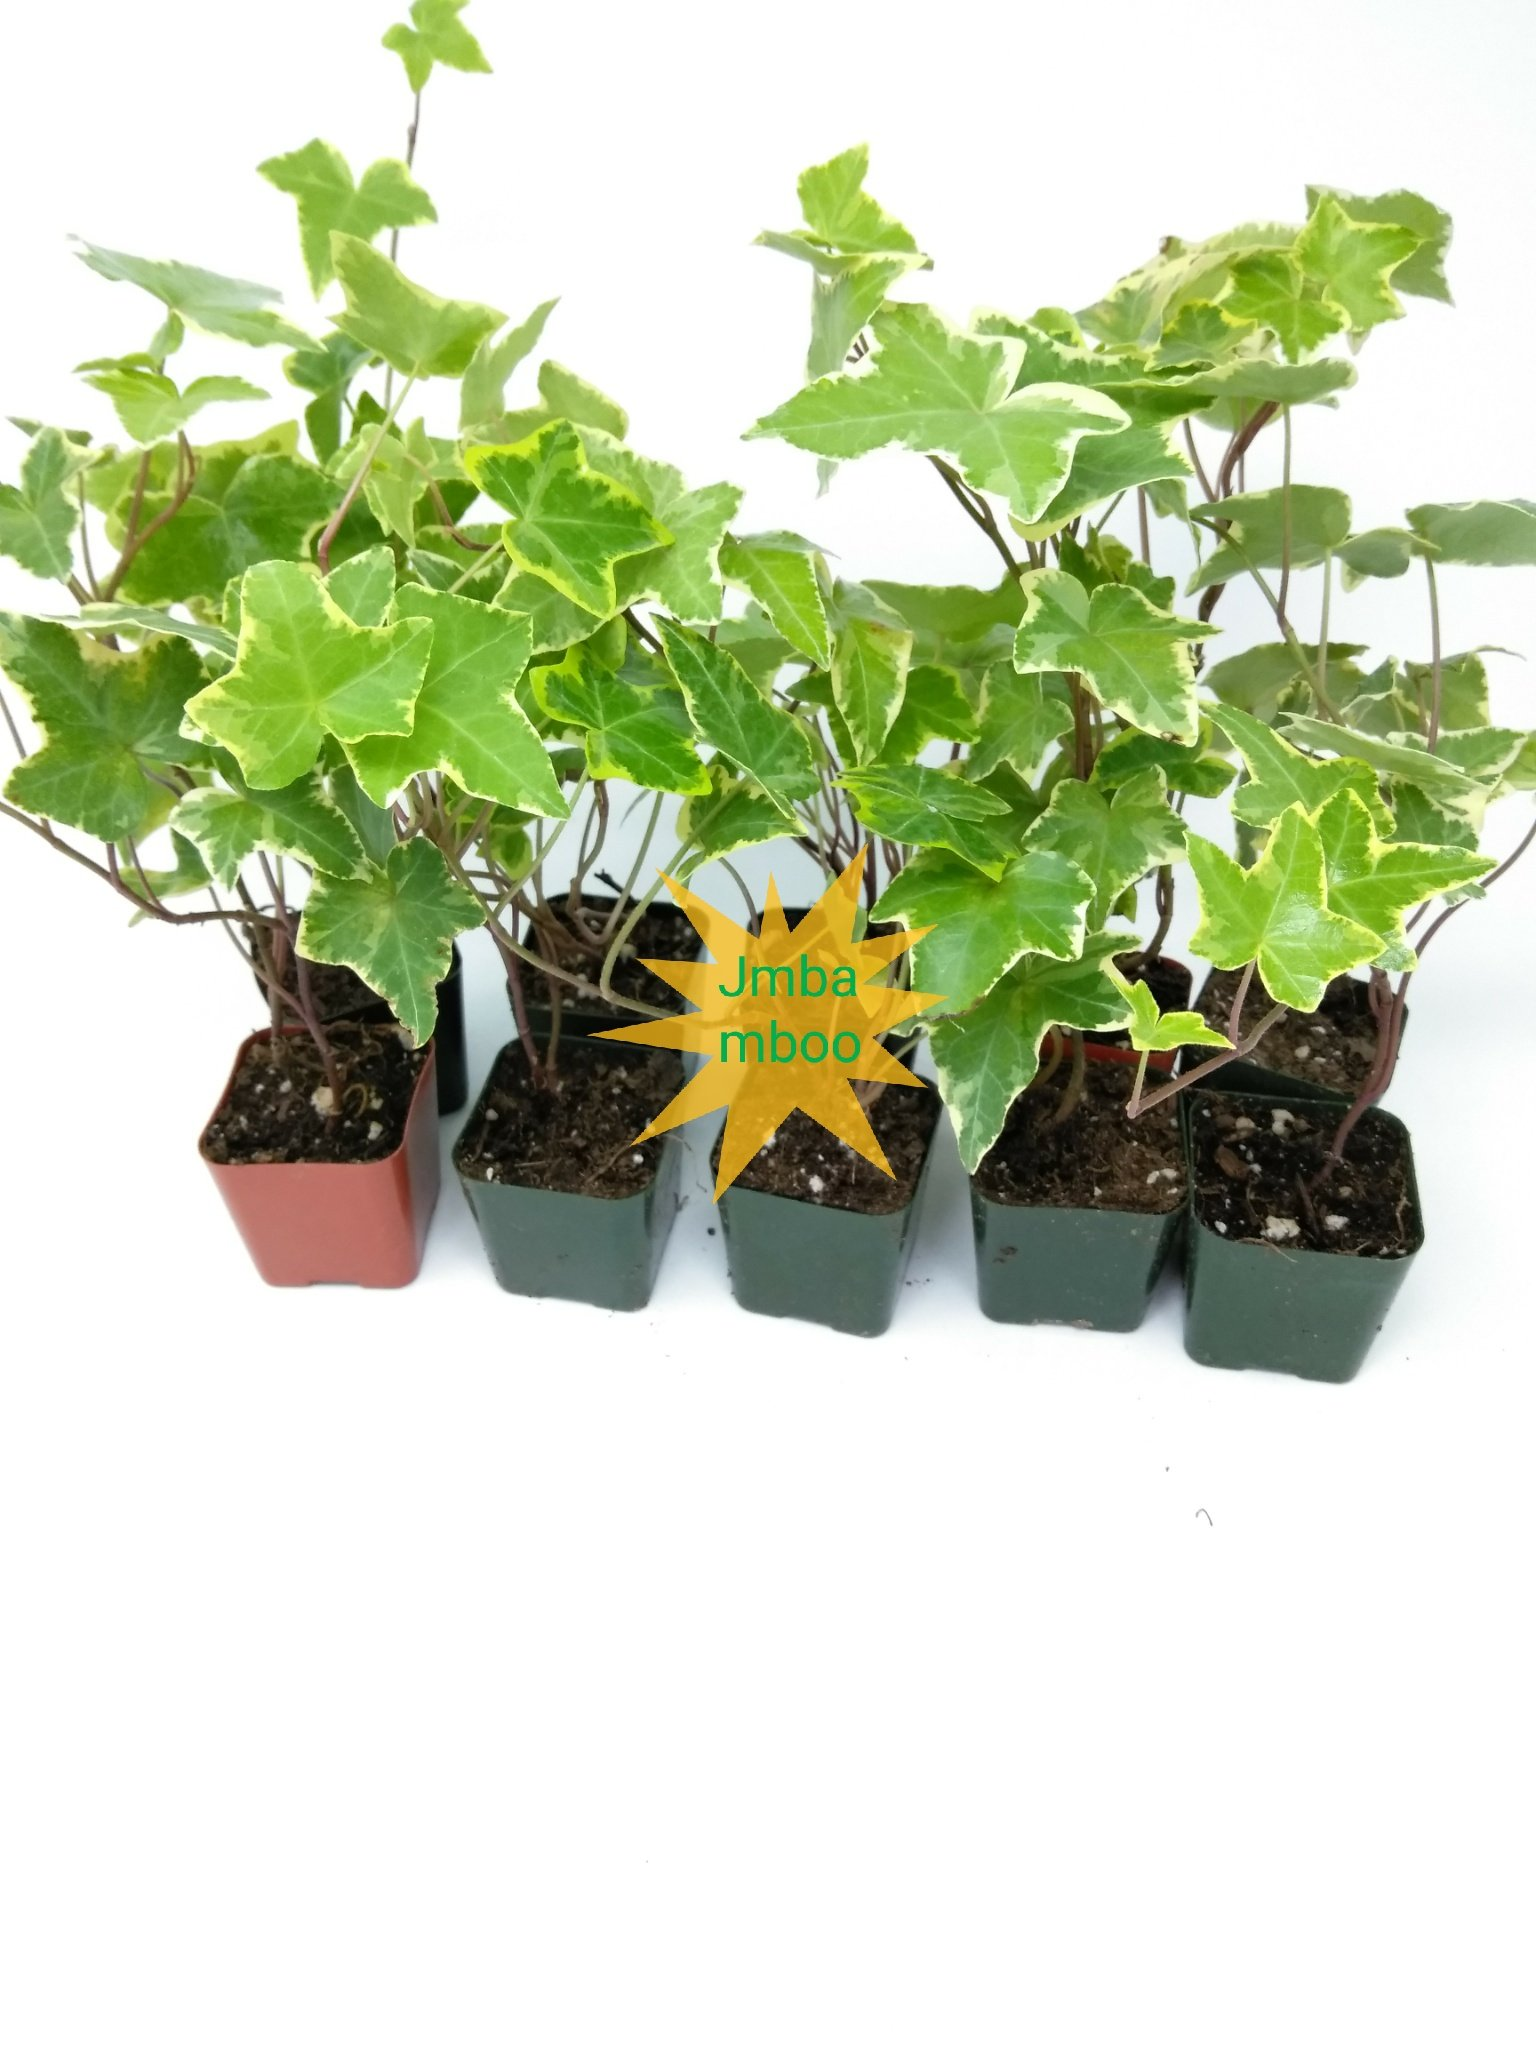 Jmbamboo - English Ivy Hedera Helix Air Purification Plant - Groundcover - 2 1/4'' Pot